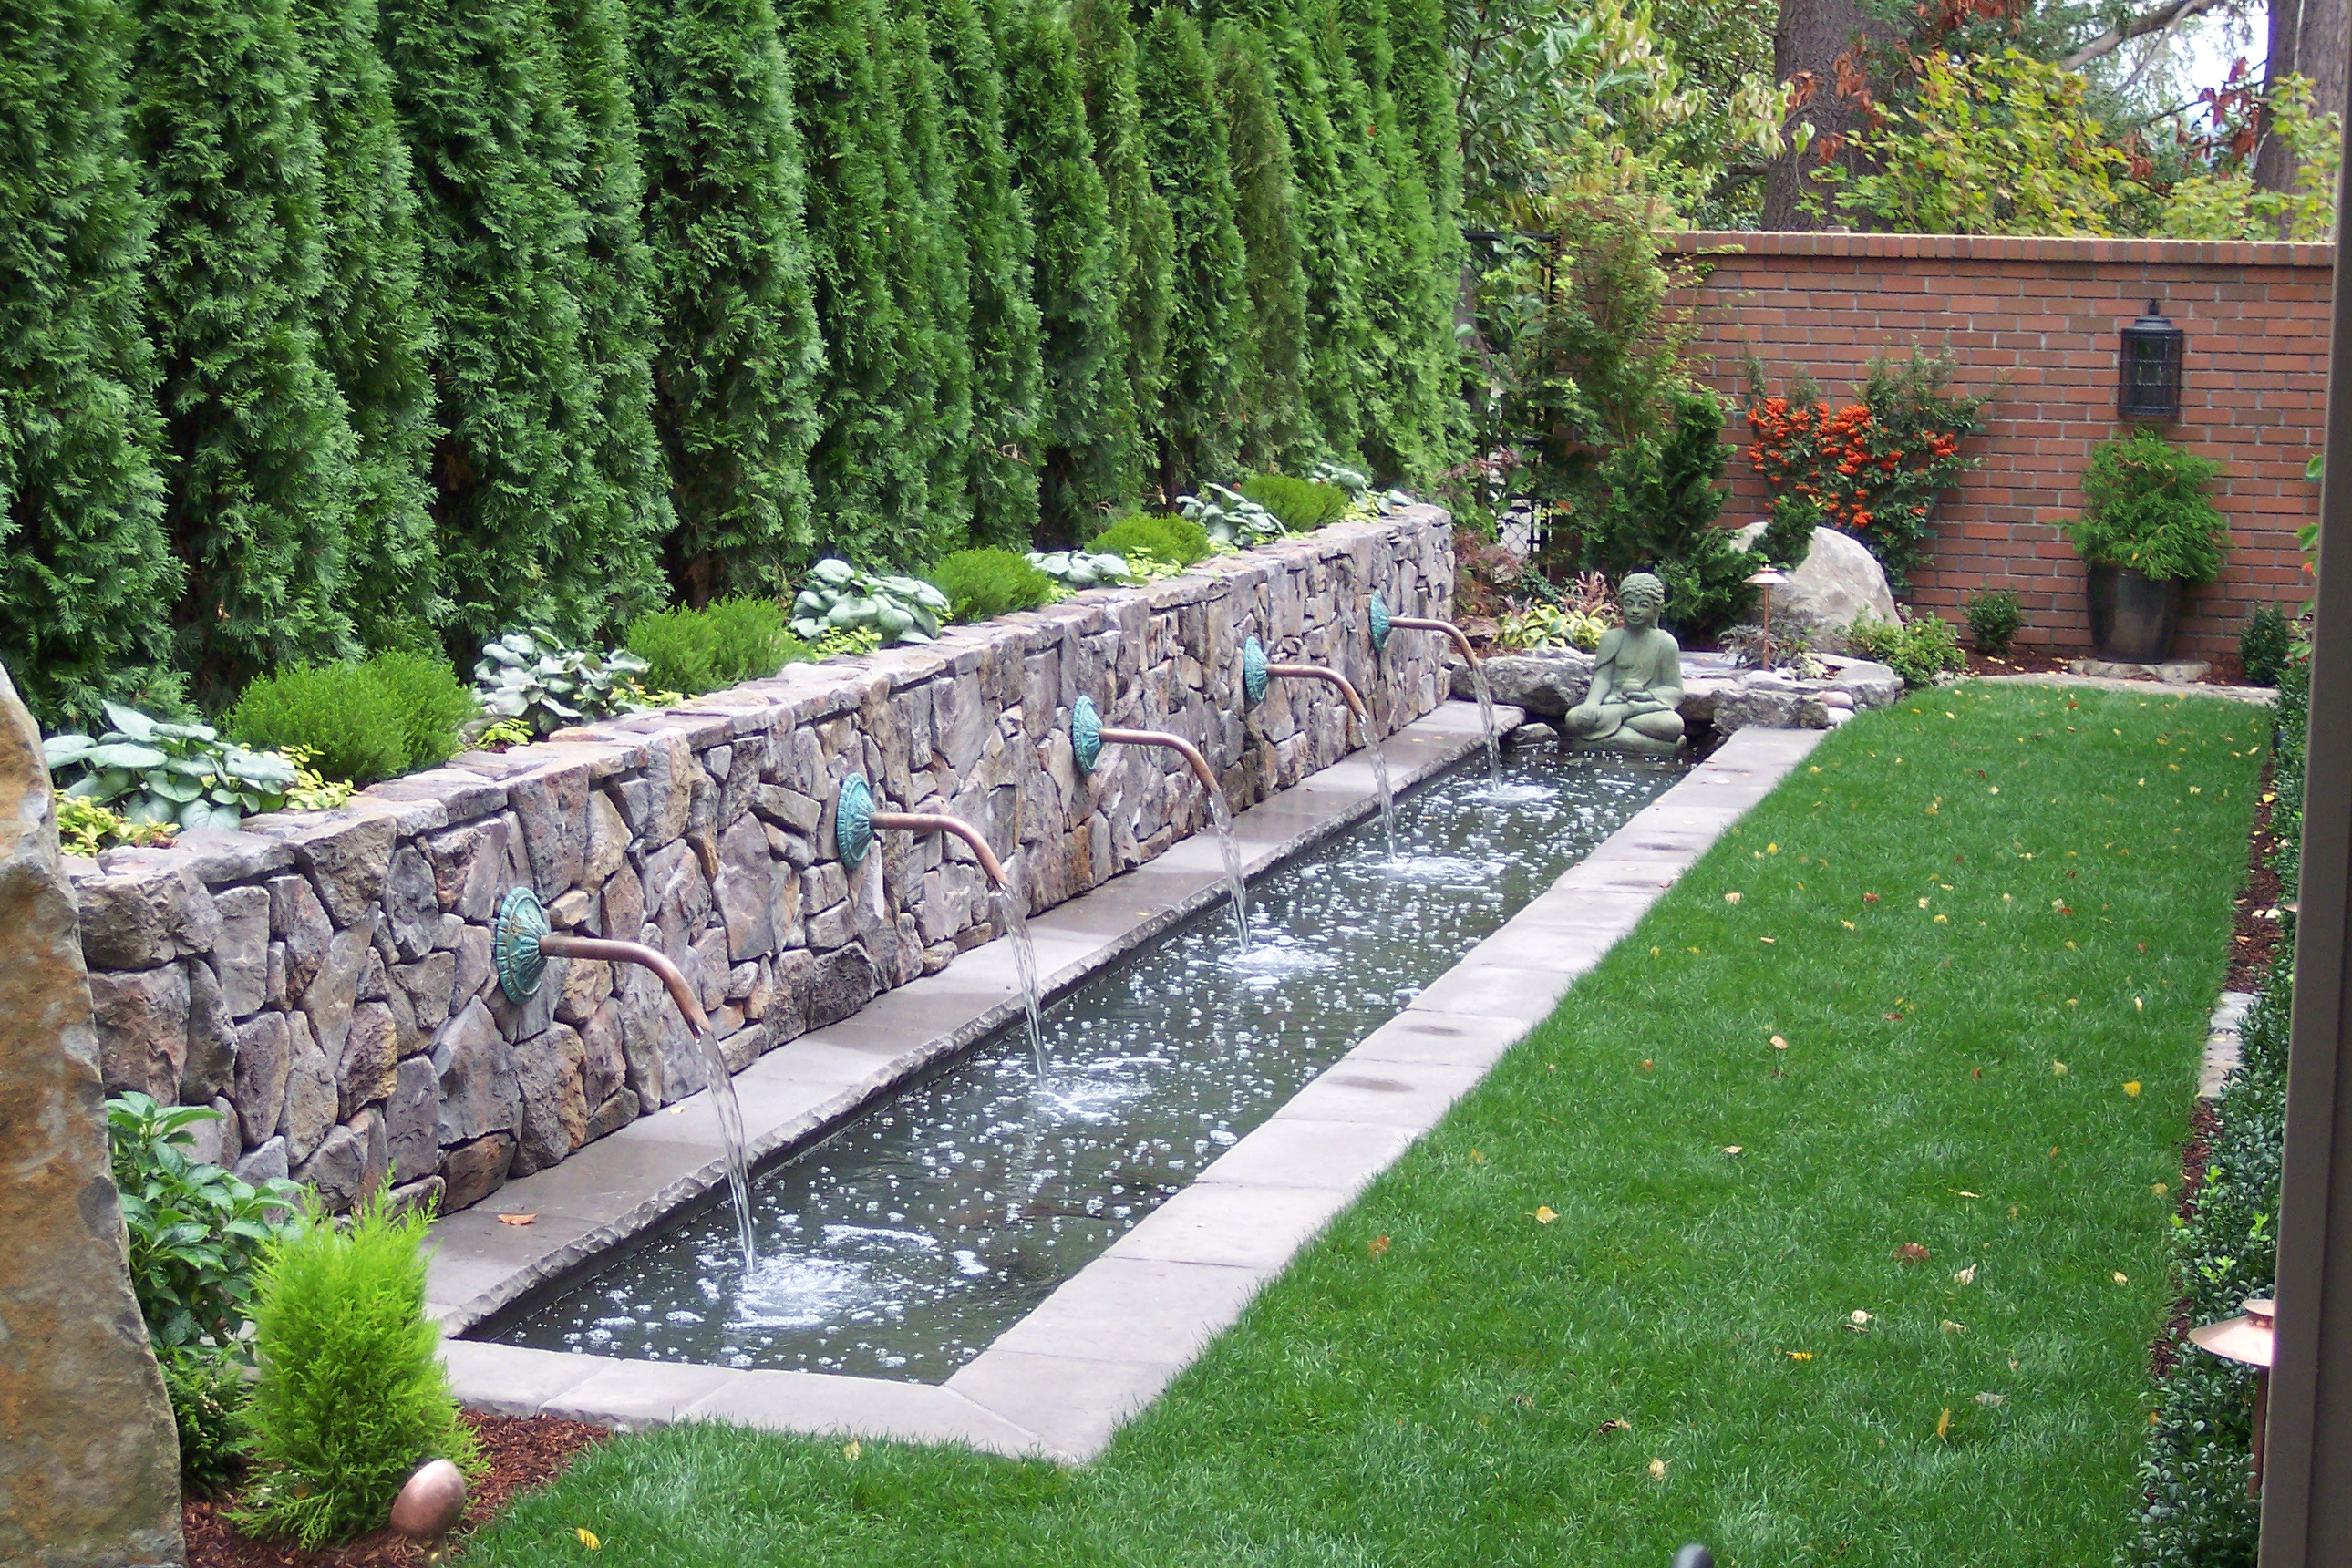 Garden Design With Water Uamp Architecture On Pinterest Water Fountains Water With How To Plant